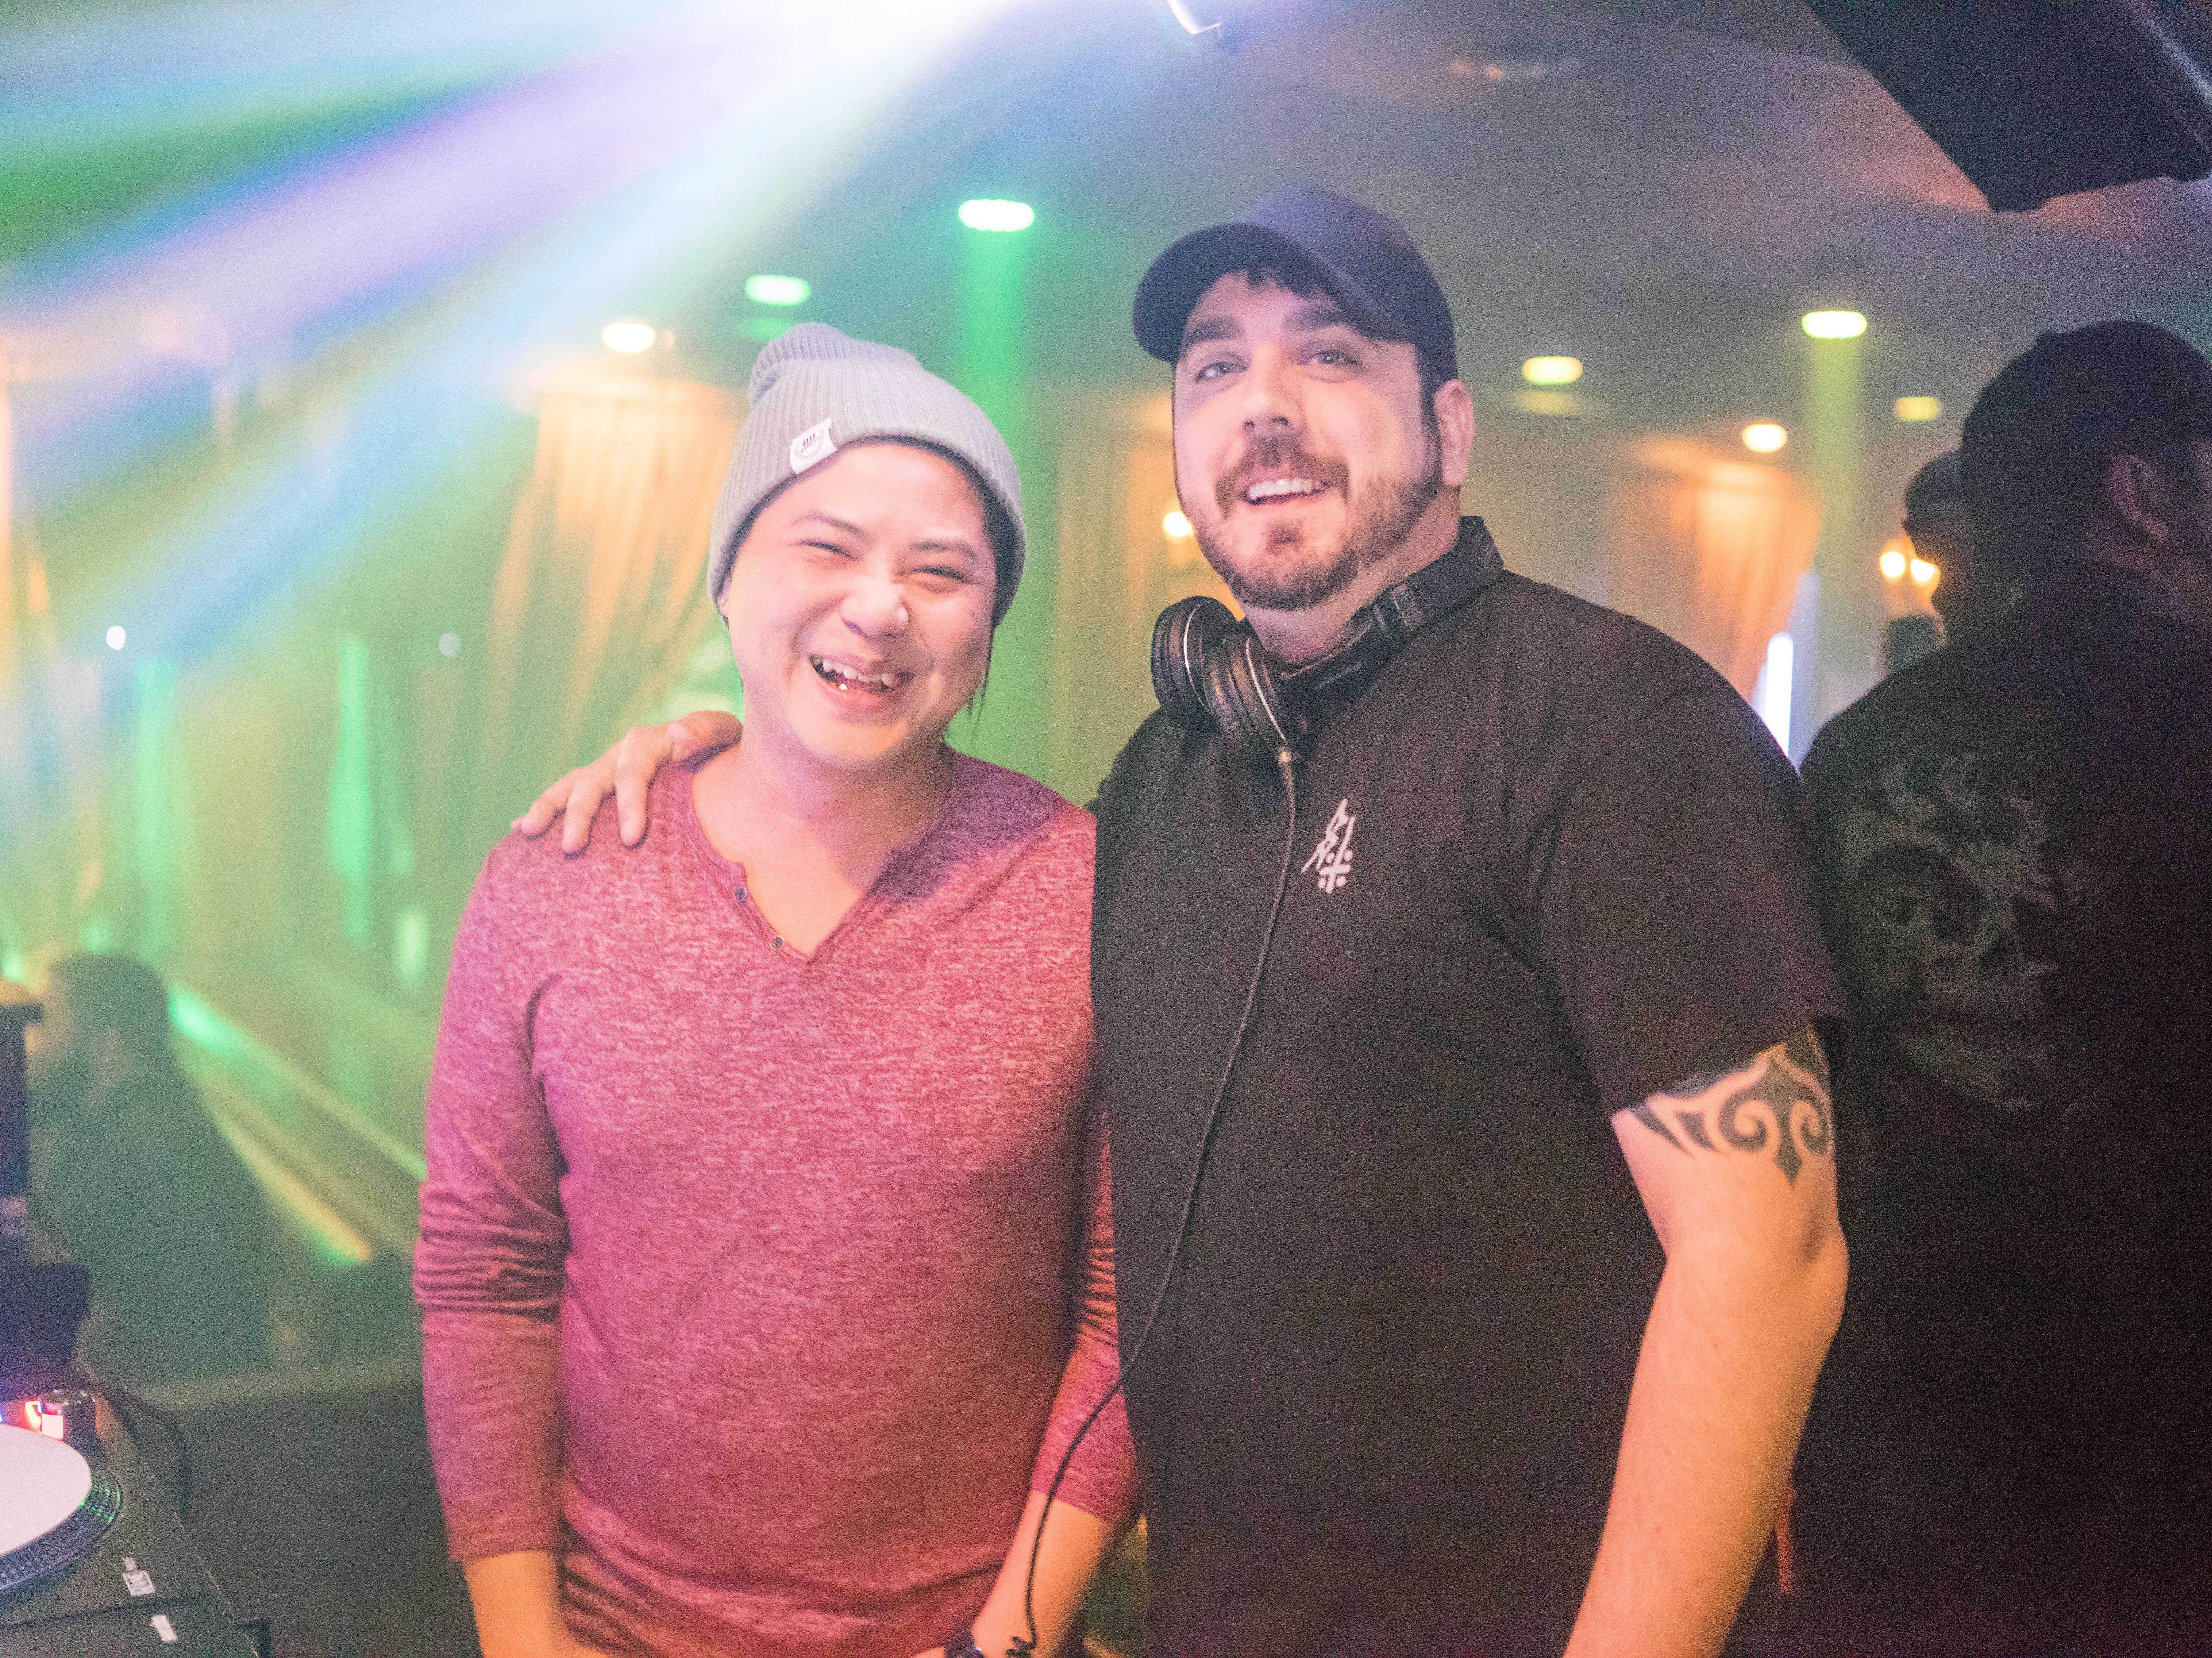 DJ Bui and DJ Chris Coffey, having a fun time, Friday, March 15th, at Voodoo Lounge.